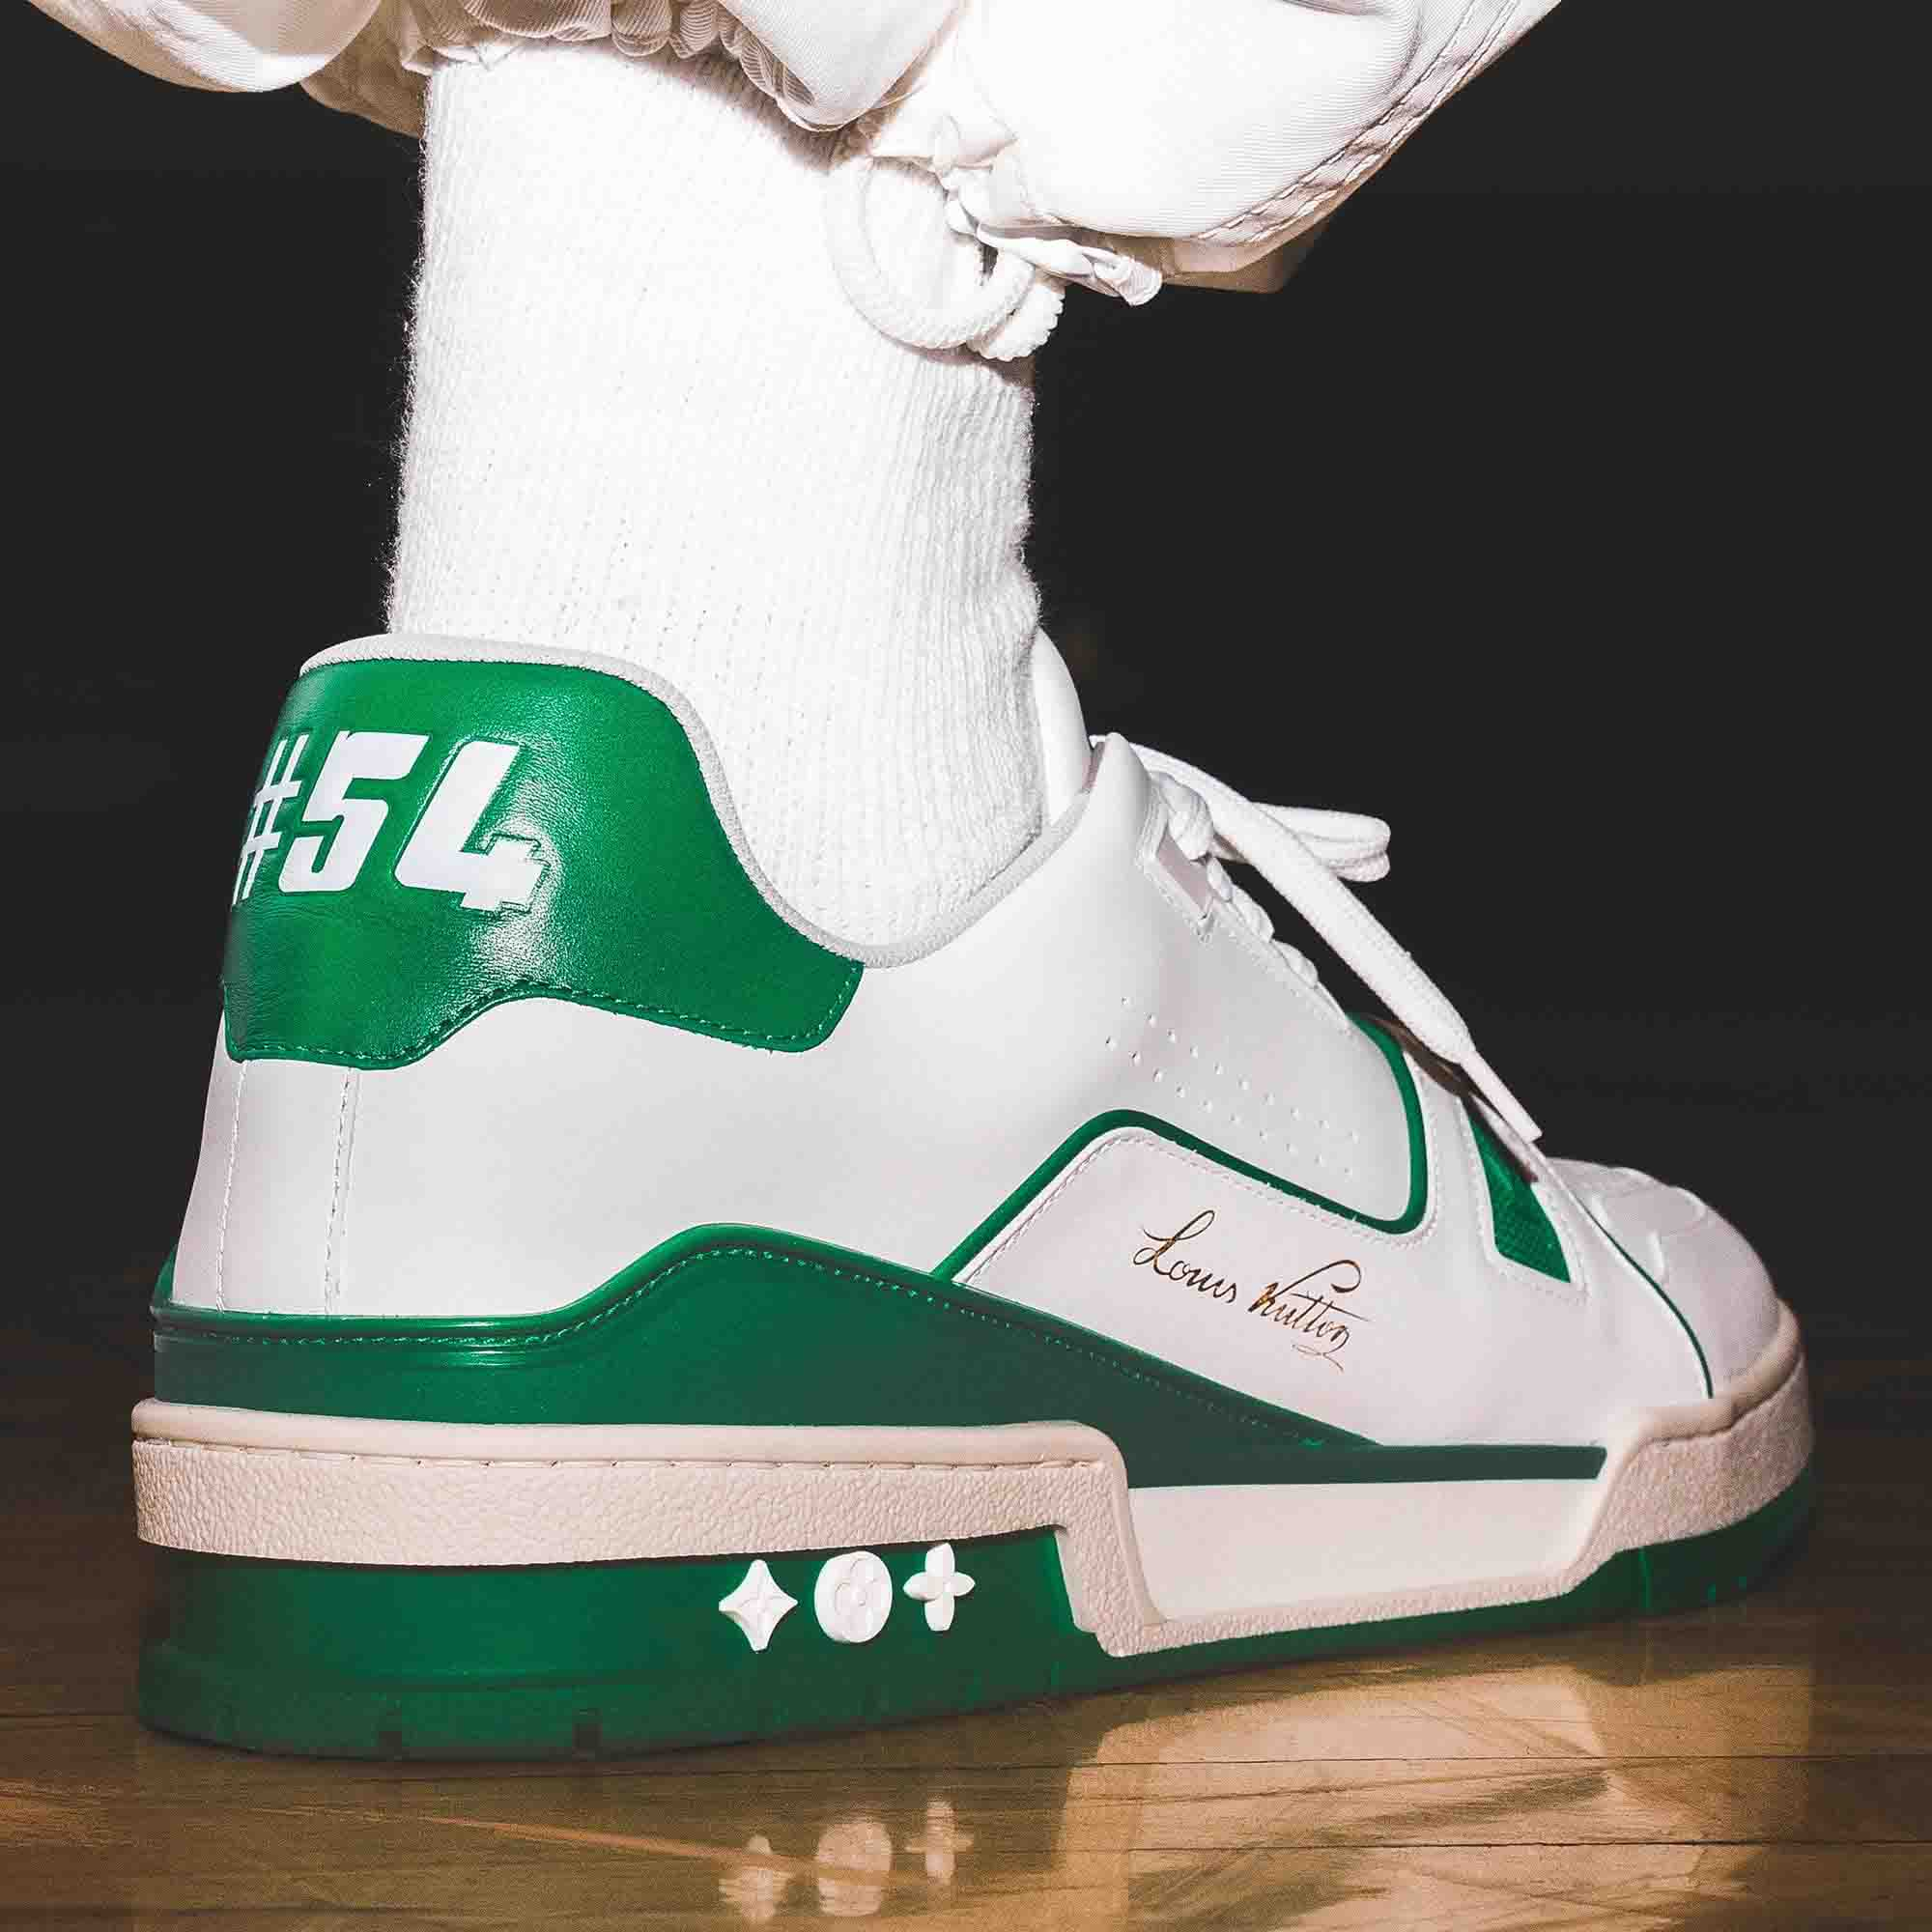 408 Trainer in Green - PerfectKickZ